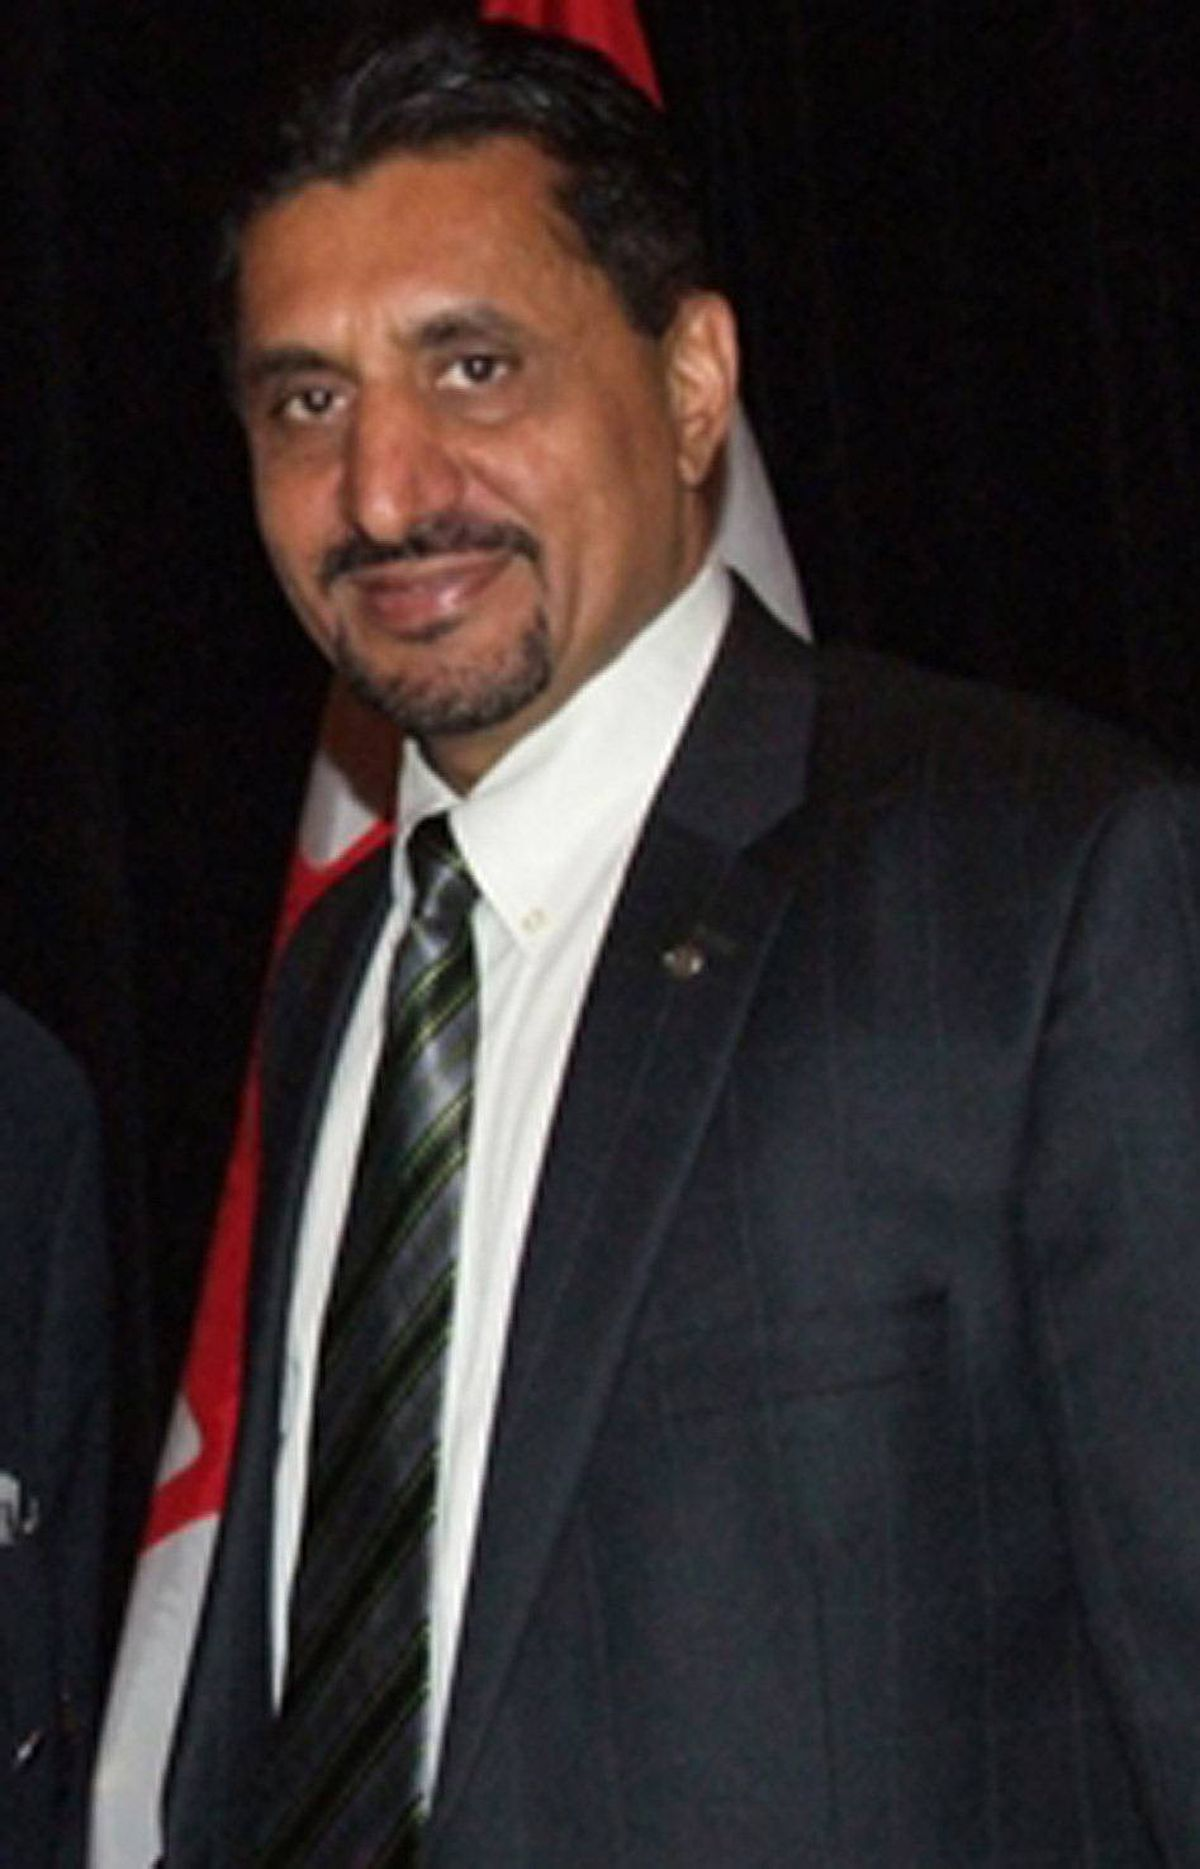 BAL GOSAL To Minister of State for Sport. The newly elected MP represents the Ontario riding of Bramalea-Gore-Malton.